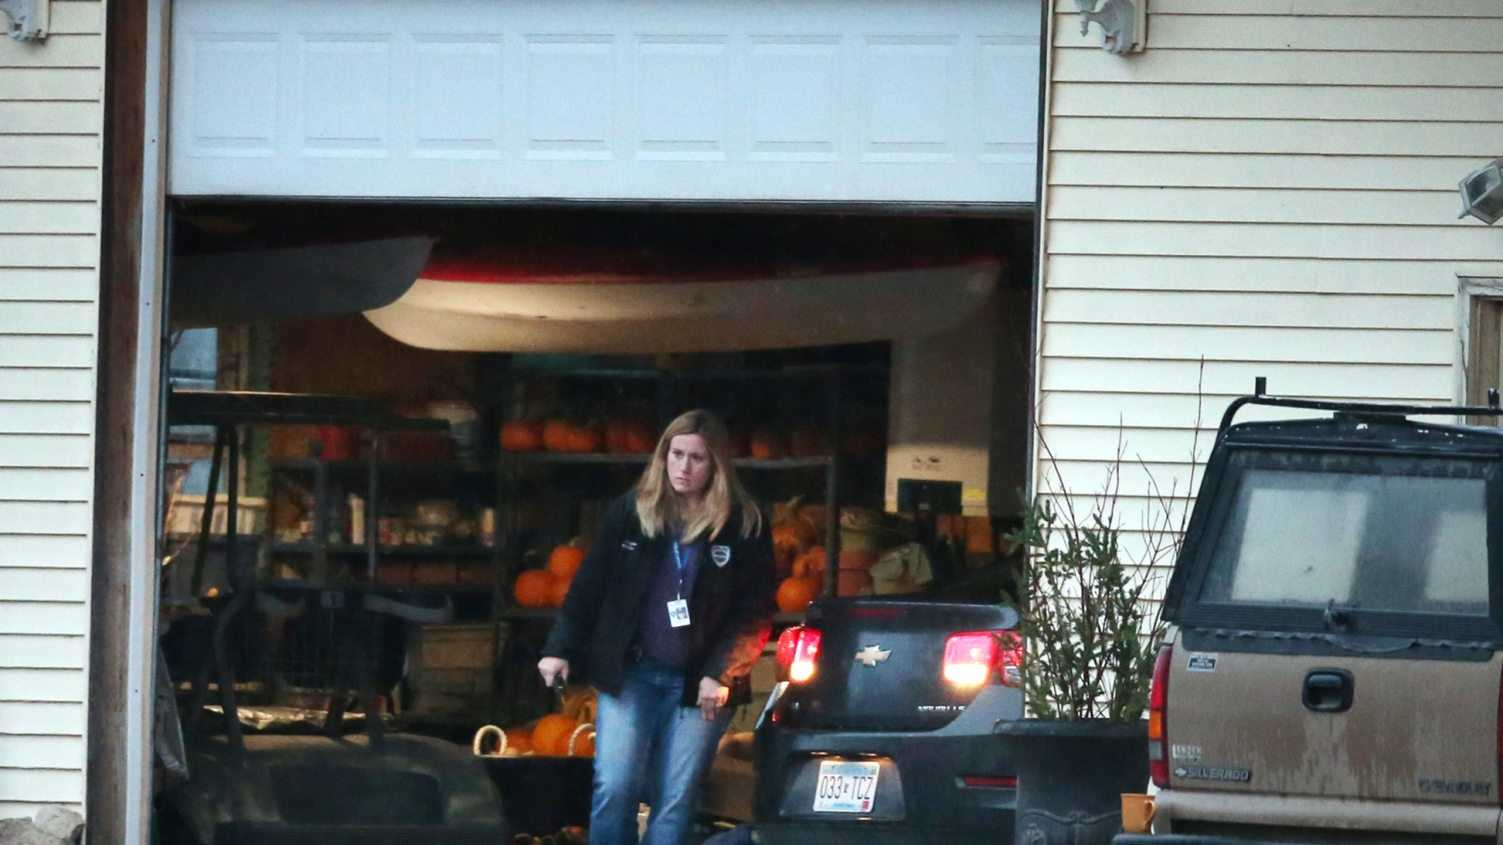 A police car is driven into a garage, Wednesday, Nov. 18, 2015, in Herman, Minn., near where authorities located two teenage sisters from Lakeville who have been missing for more than two years. The girls, Gianna and Samantha Rucki, now 16 and 17 years old respectively, hadn't been seen in public since April 2013 after disappearing in a custody dispute, were found at a horse farm in western Minnesota after police executed a search warrant, Lakeville police Lt. Jason Polinski told the Star Tribune.